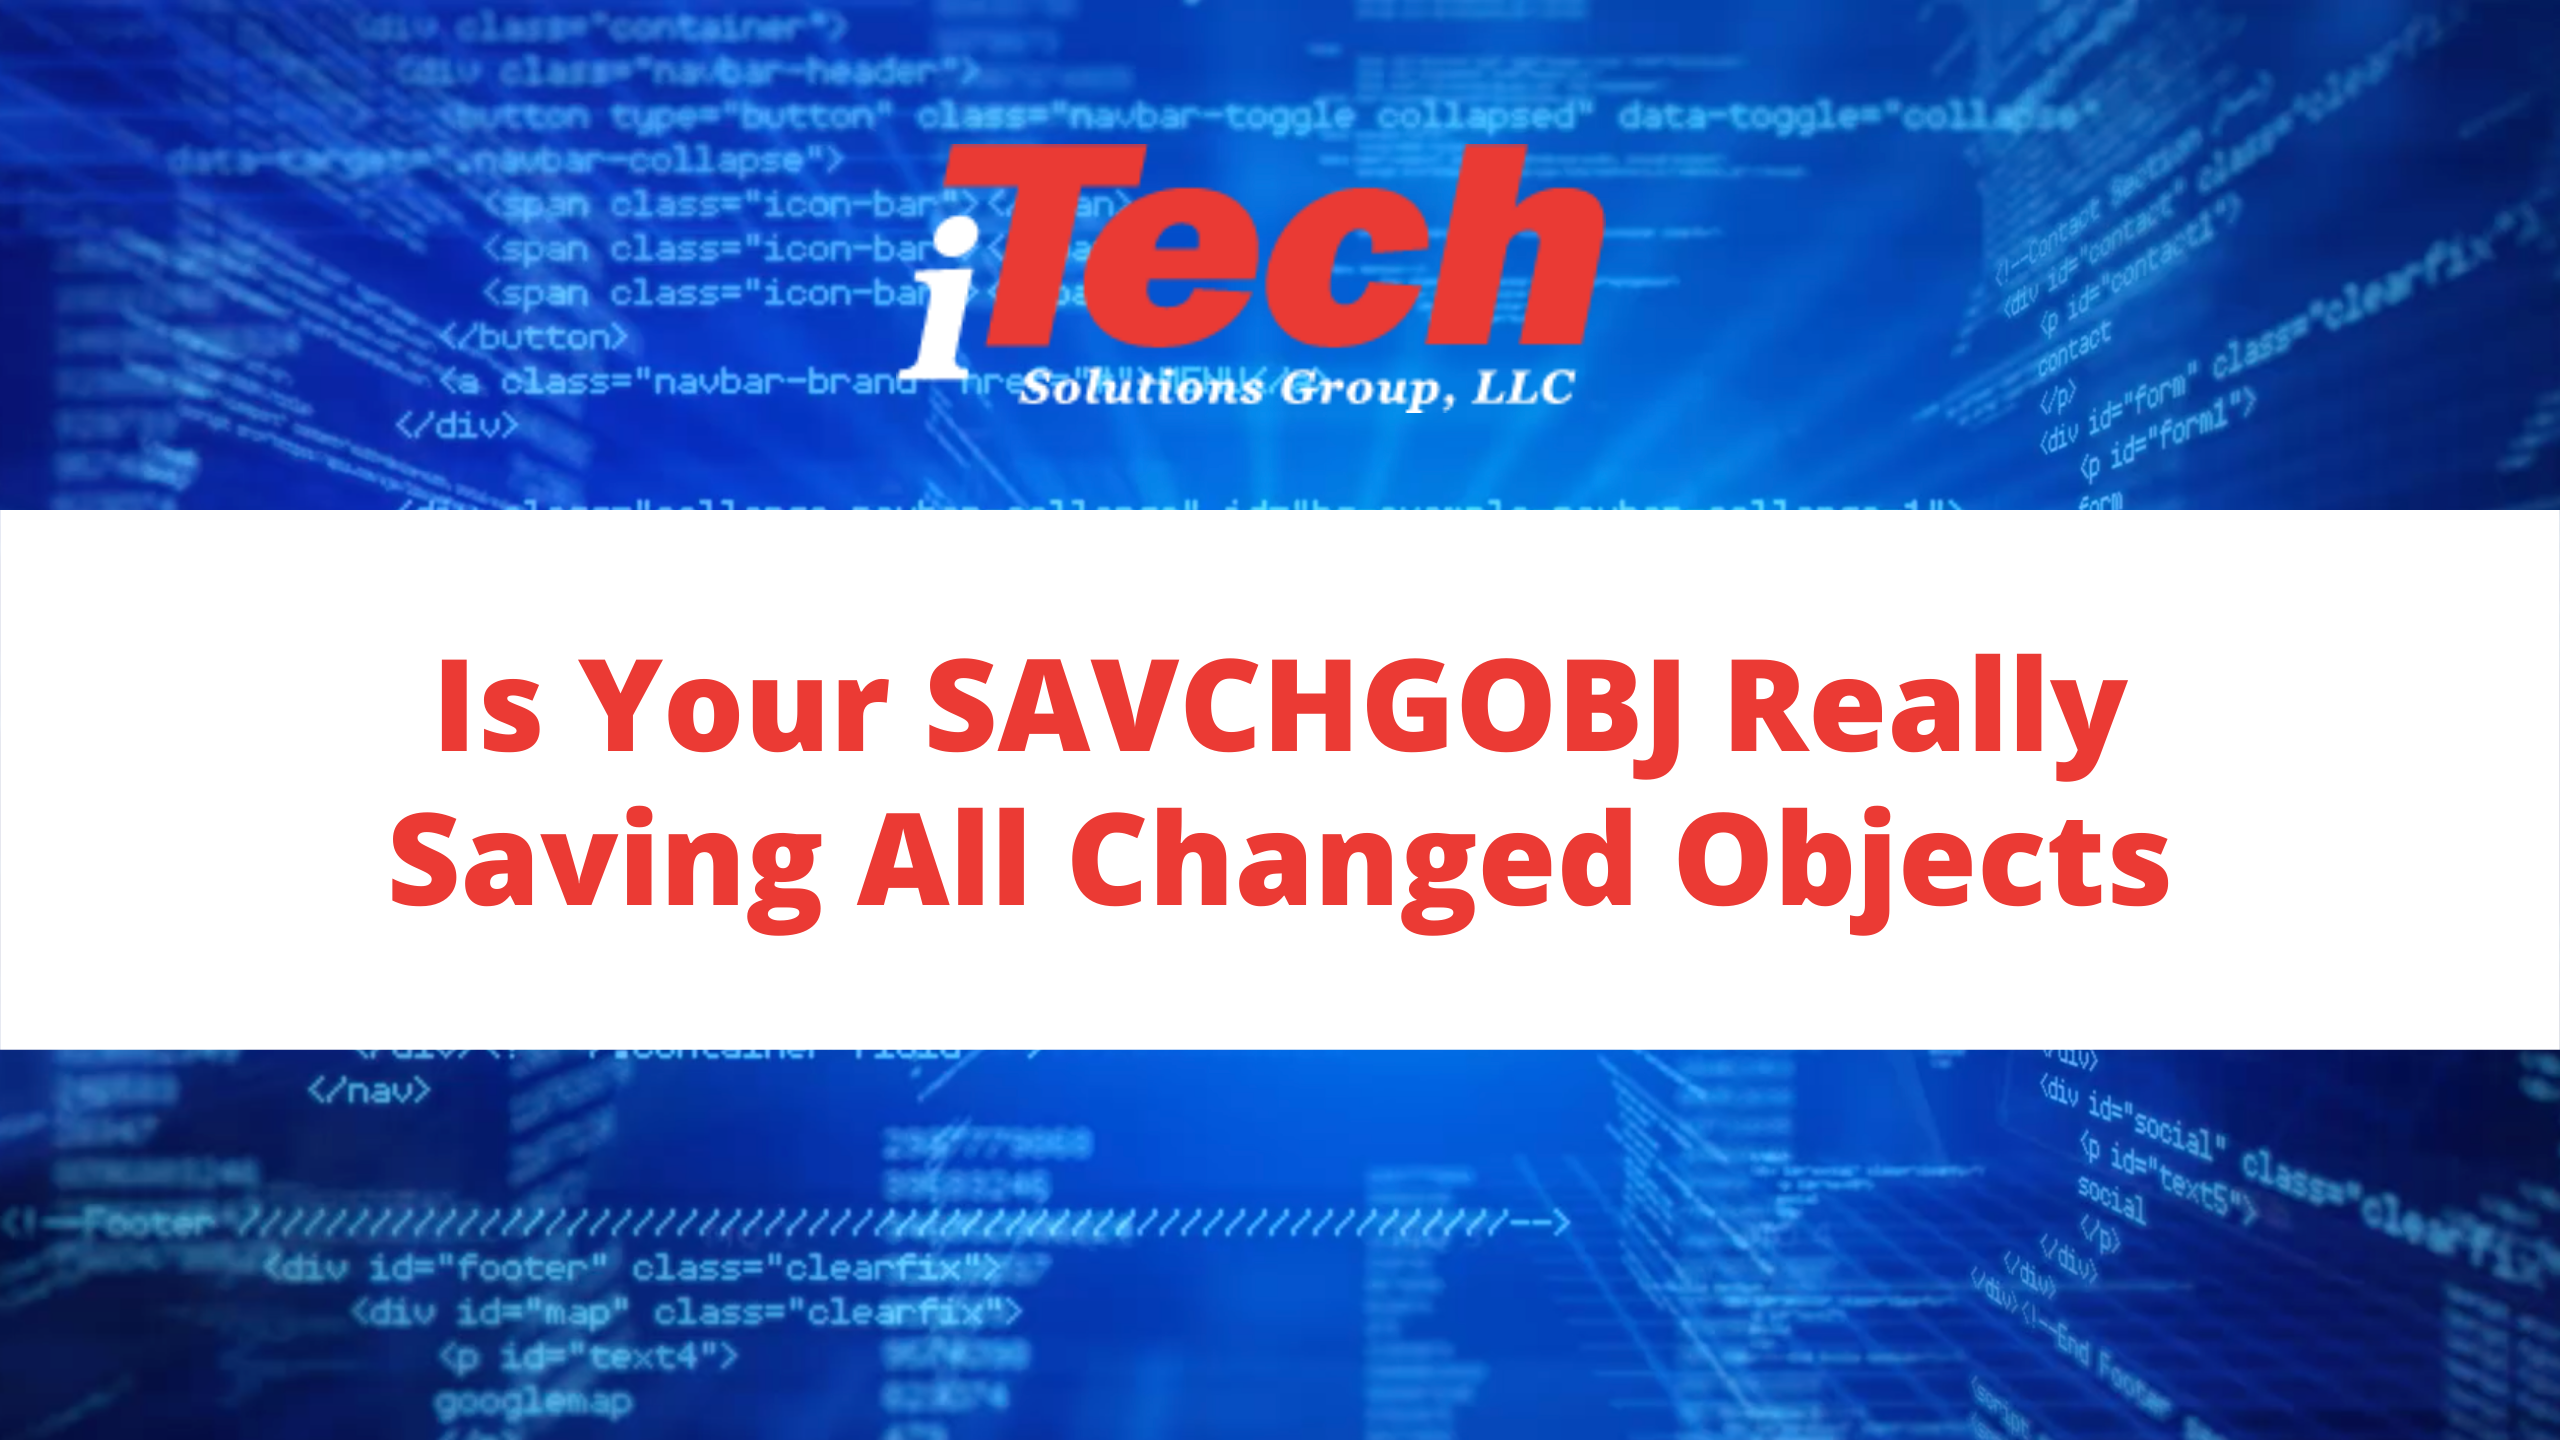 Is Your SAVCHGOBJ Really Saving All Changed Objects (1)